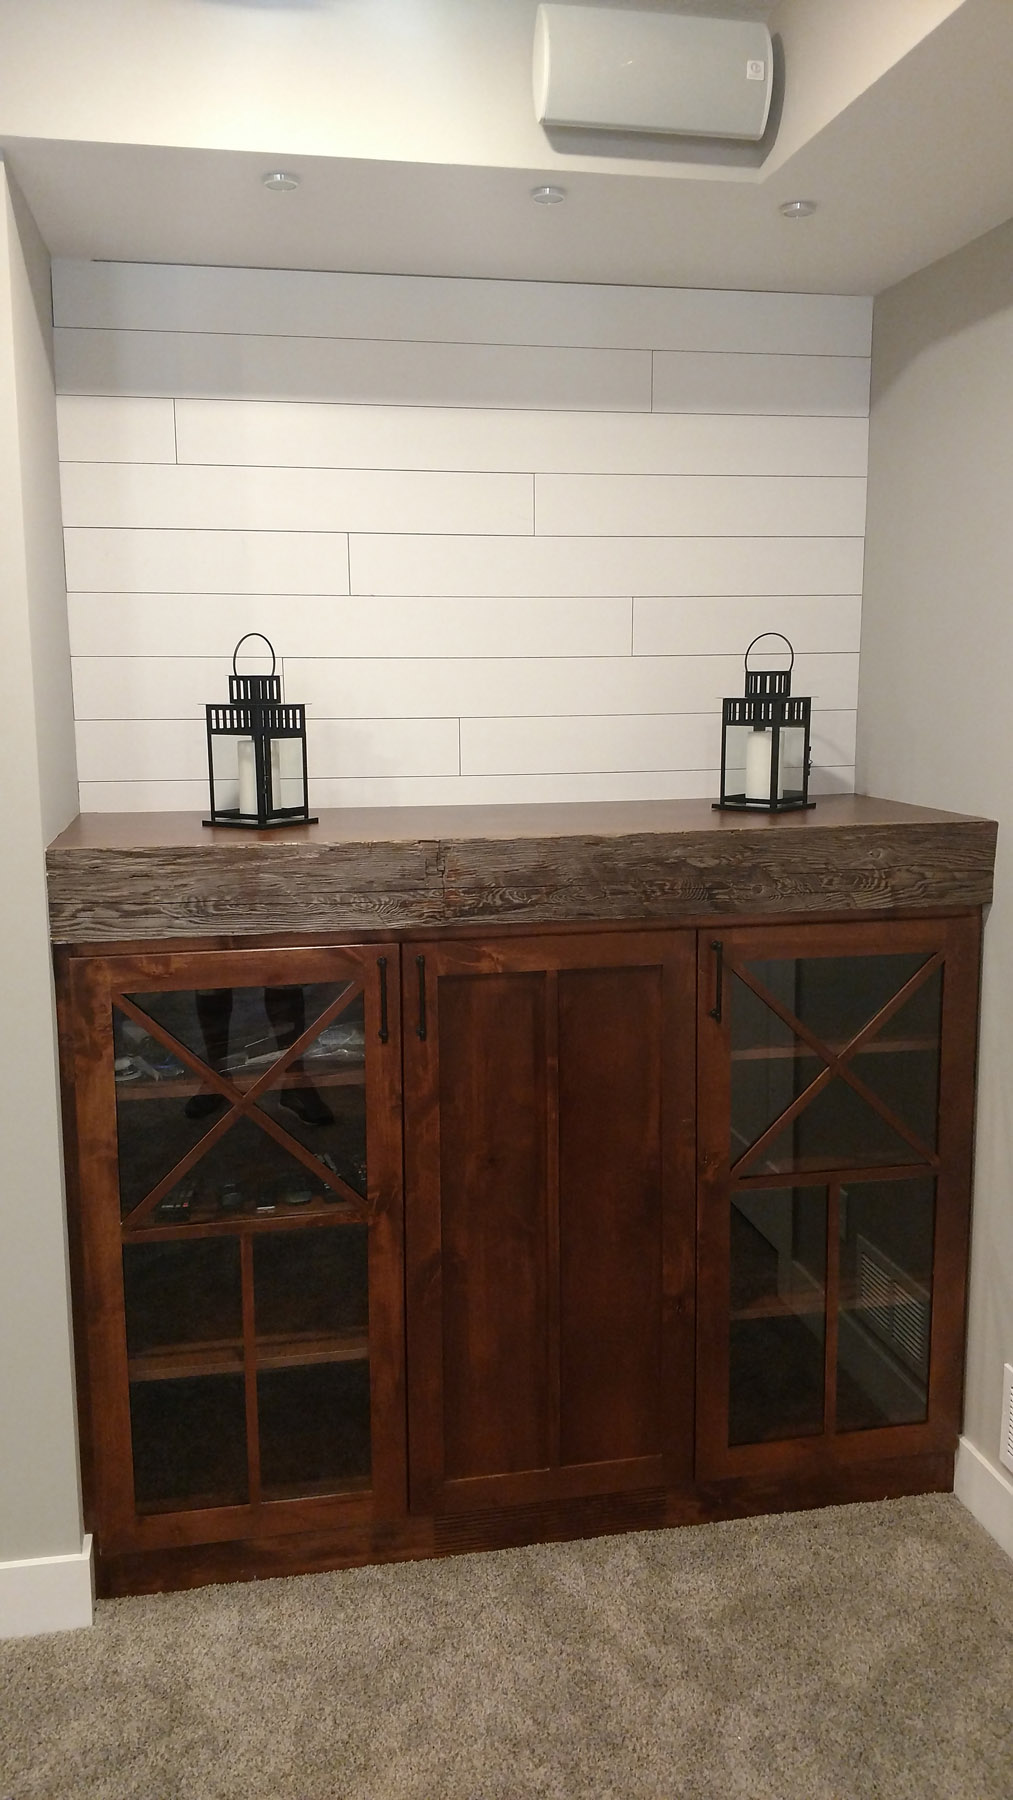 Knotty Alder cabinets w/ one of a kind grids